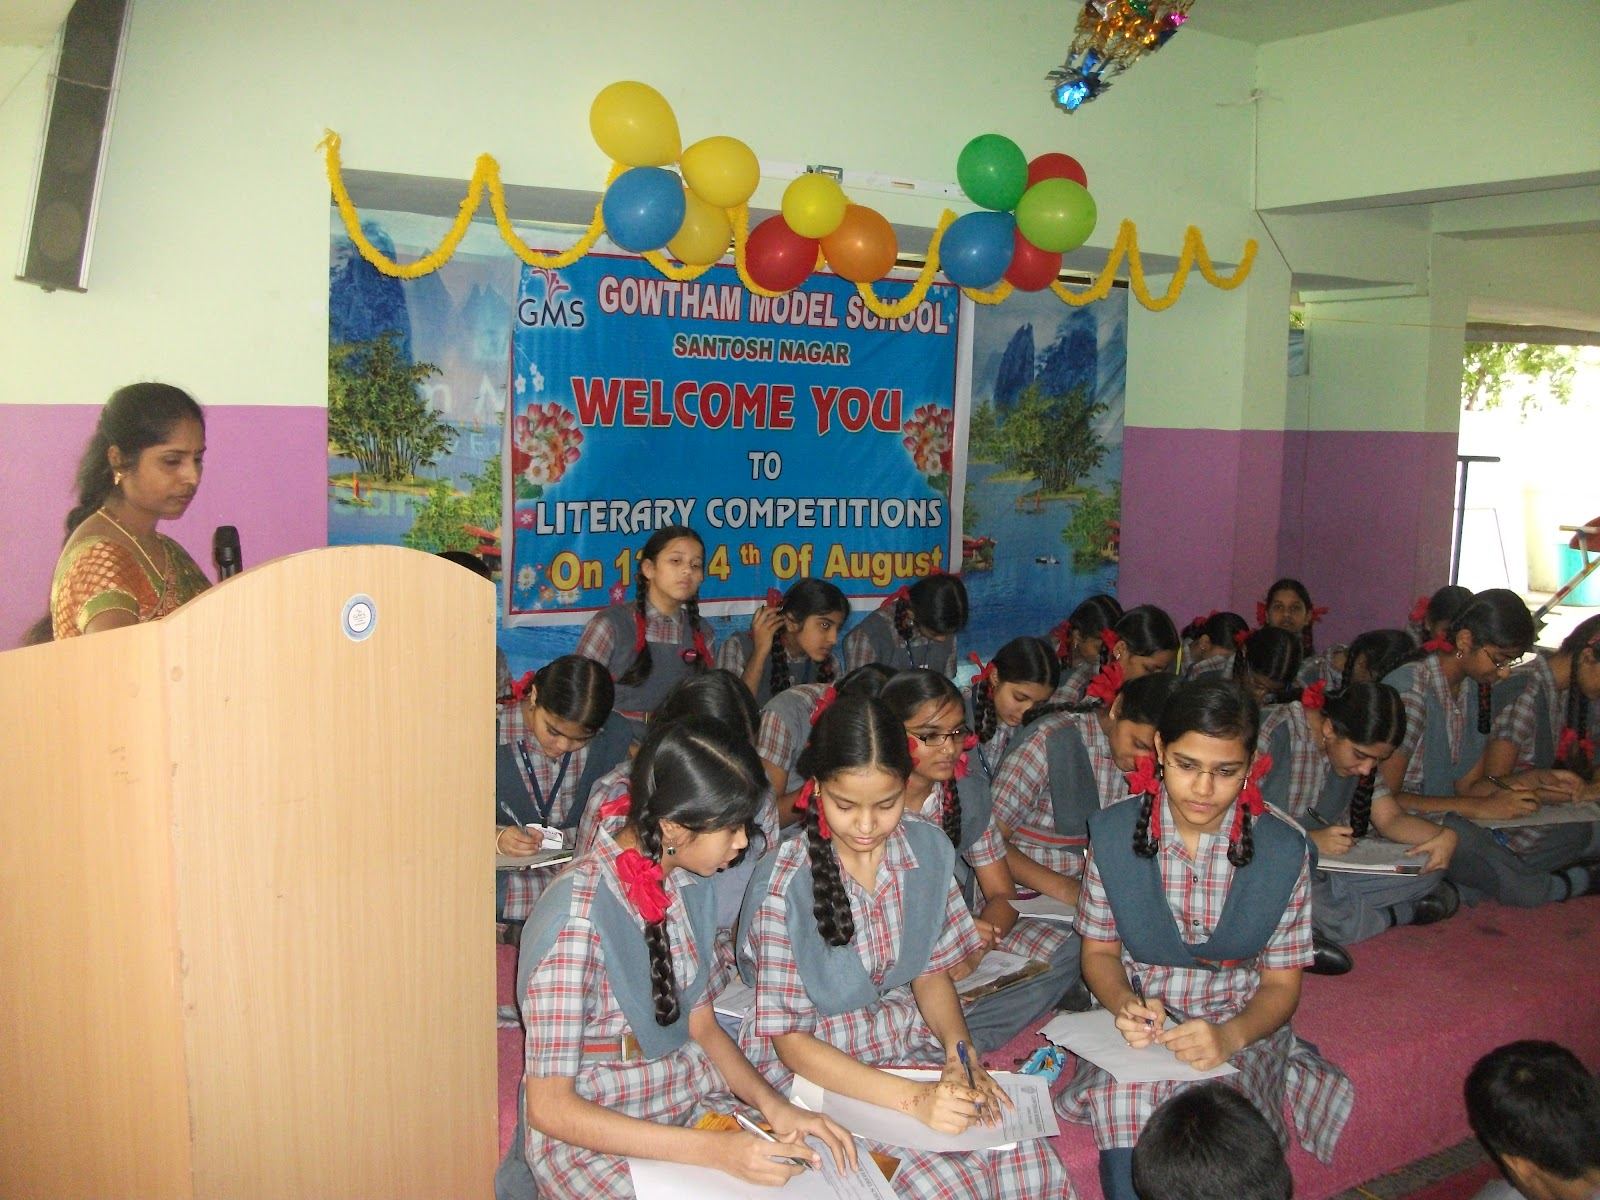 raksha bandhan essay for primary student Welcome to students of class 4 view essays, articles & other information pertaining to your class click on the essay topic to read the essay do a back on your browser to come back to this page for more essays.